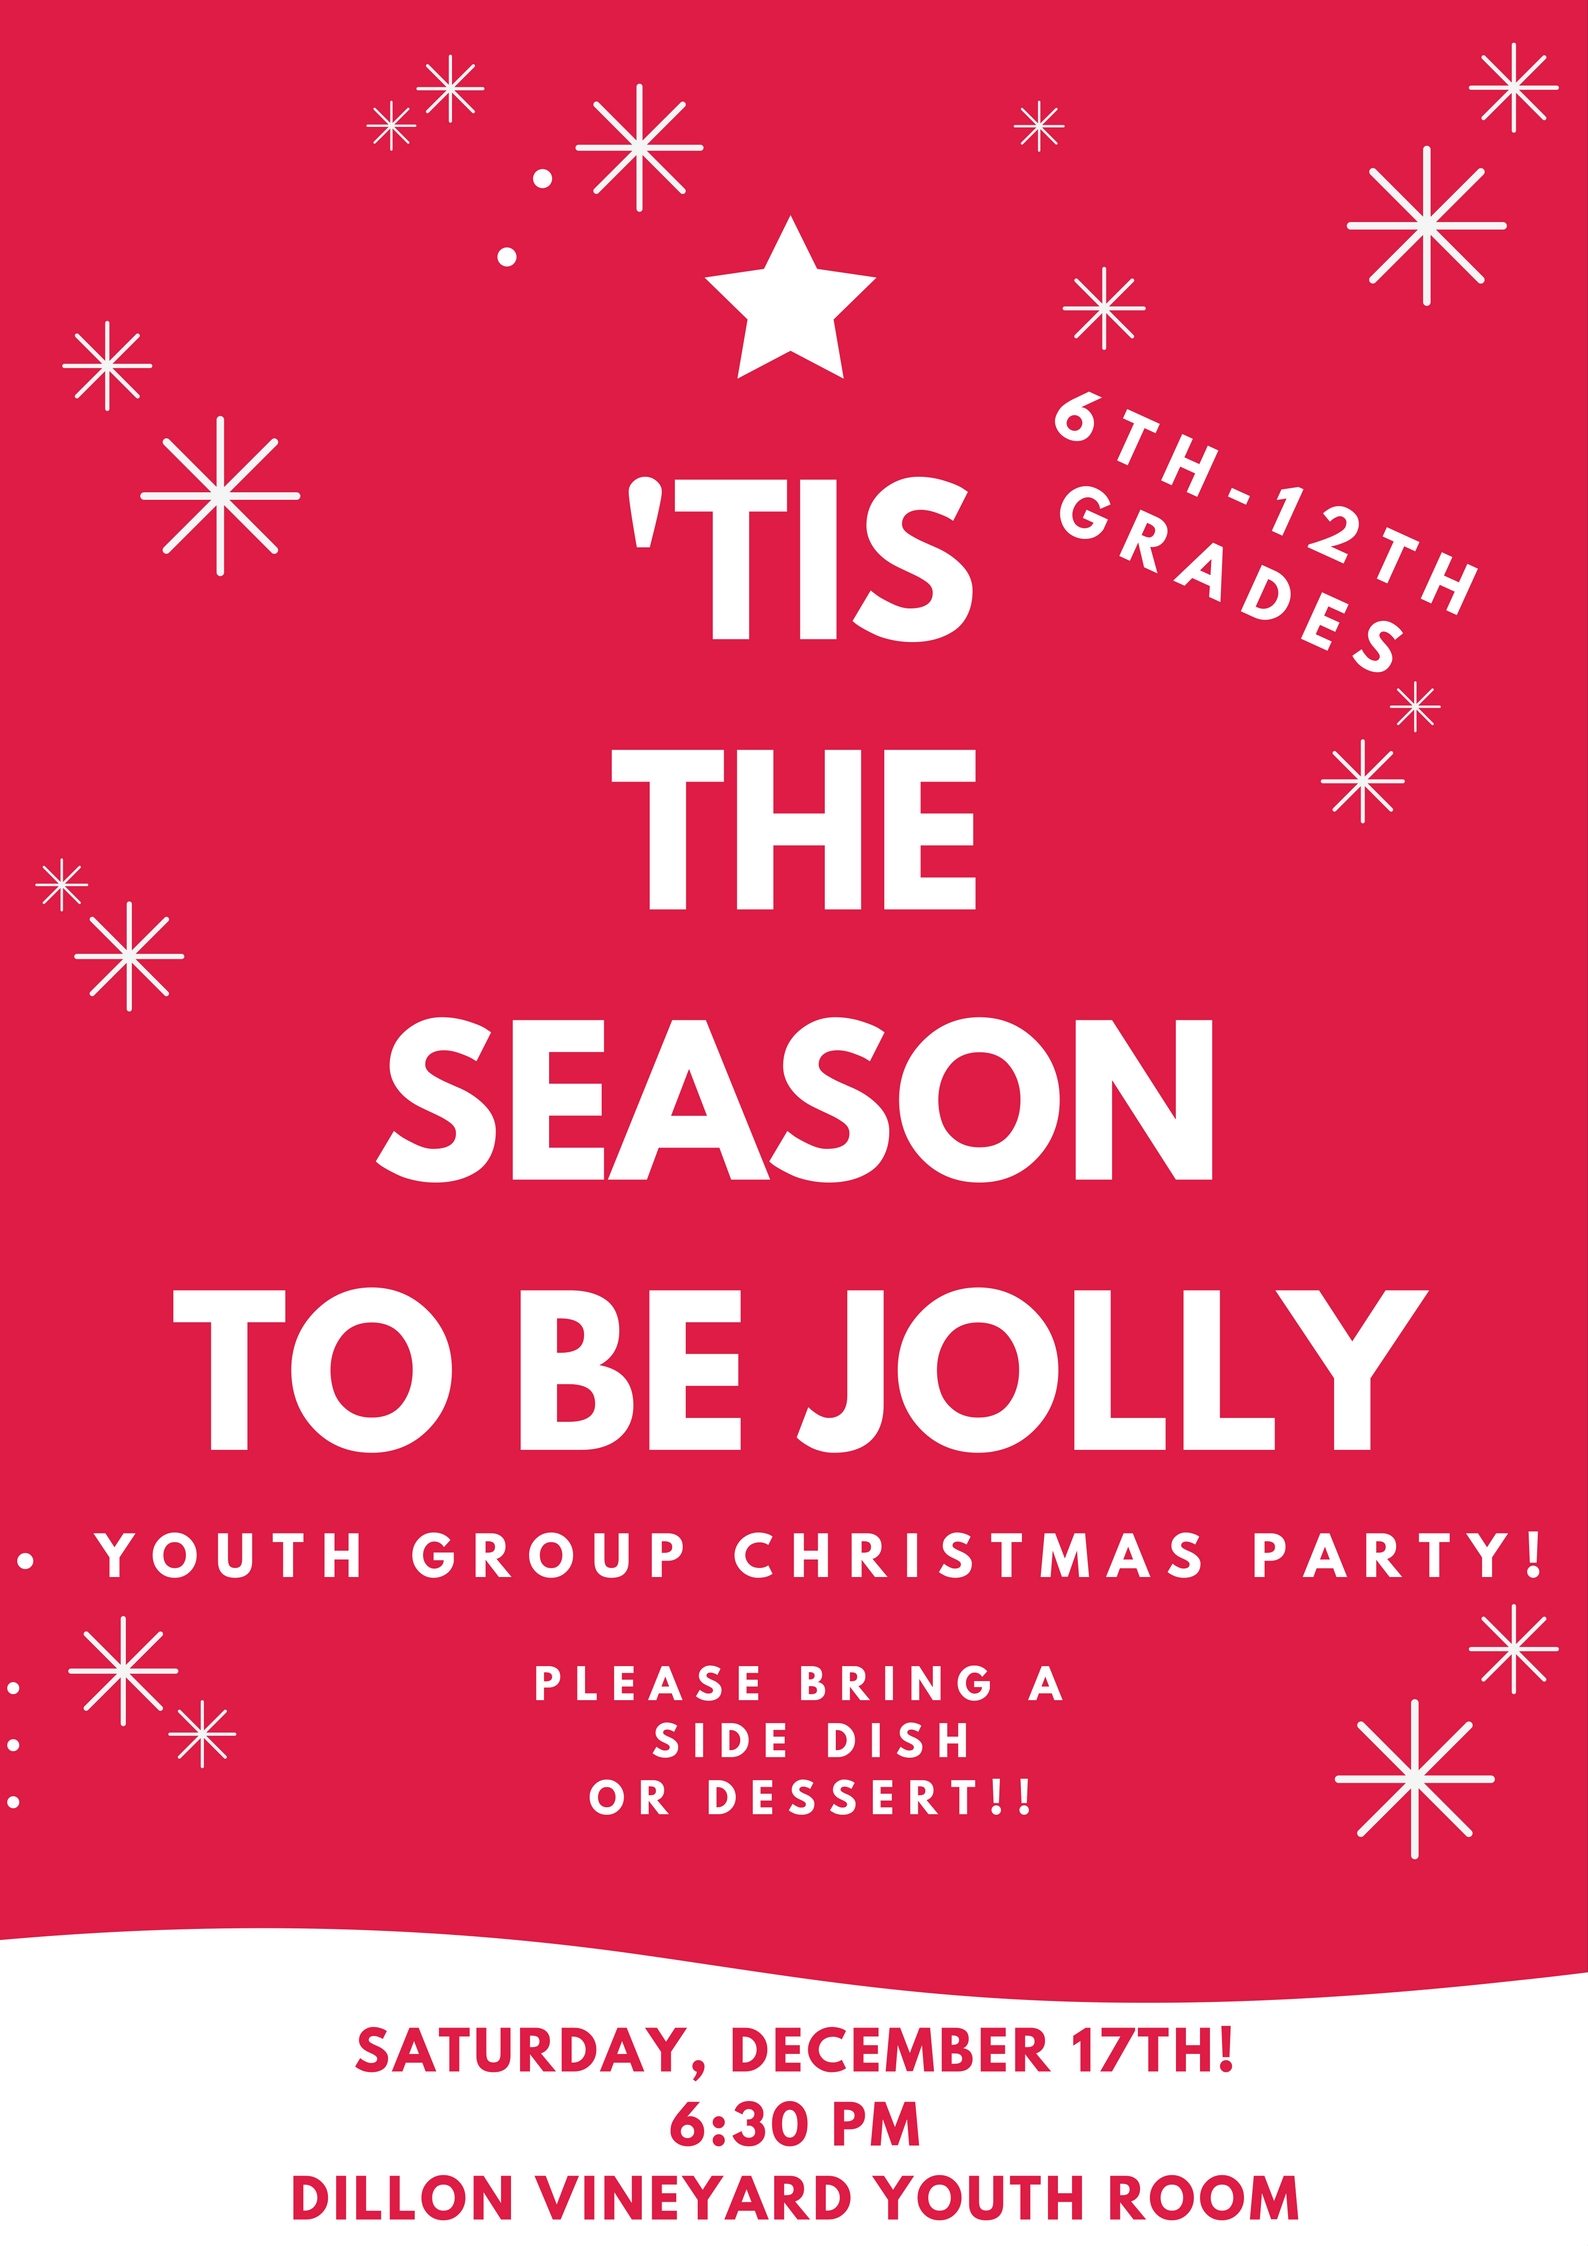 Youth Group Christmas Party- December 17th, 6:30 PM | Dillon Vineyard